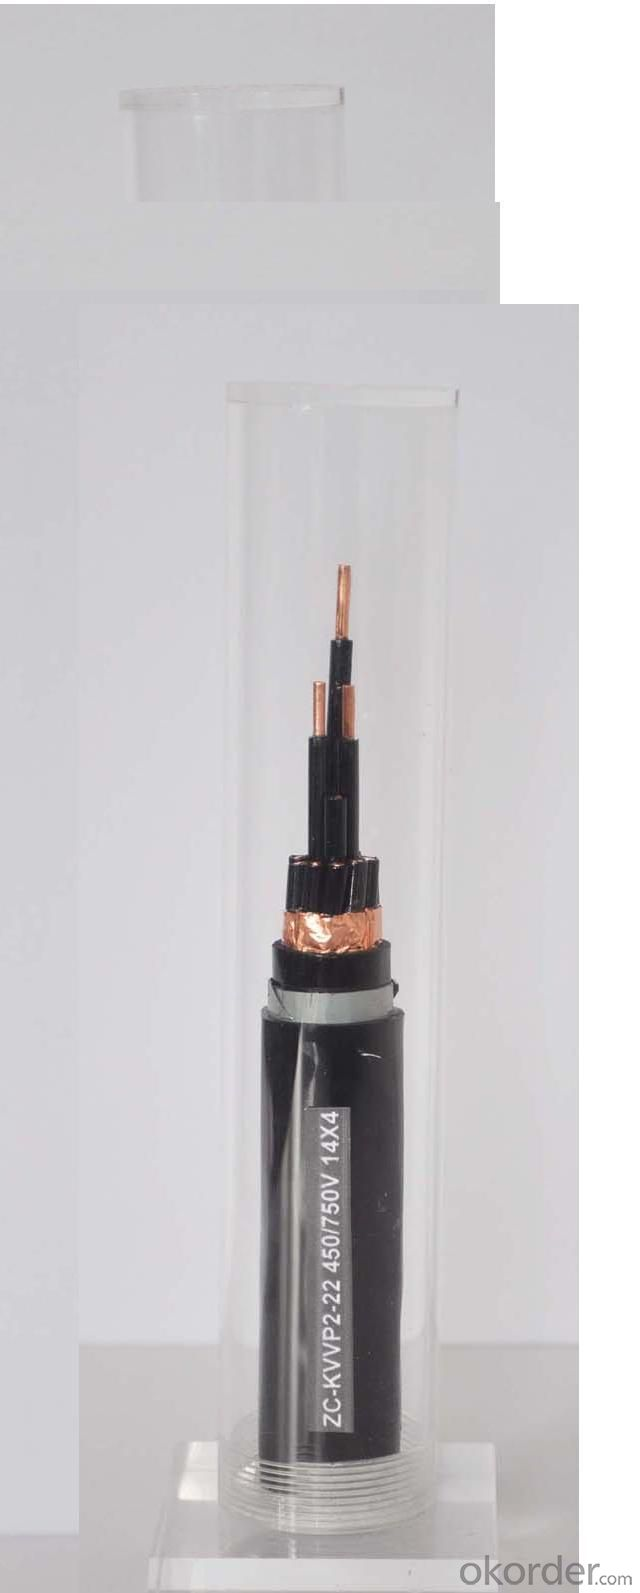 Flame retardant PVC insulated control cable